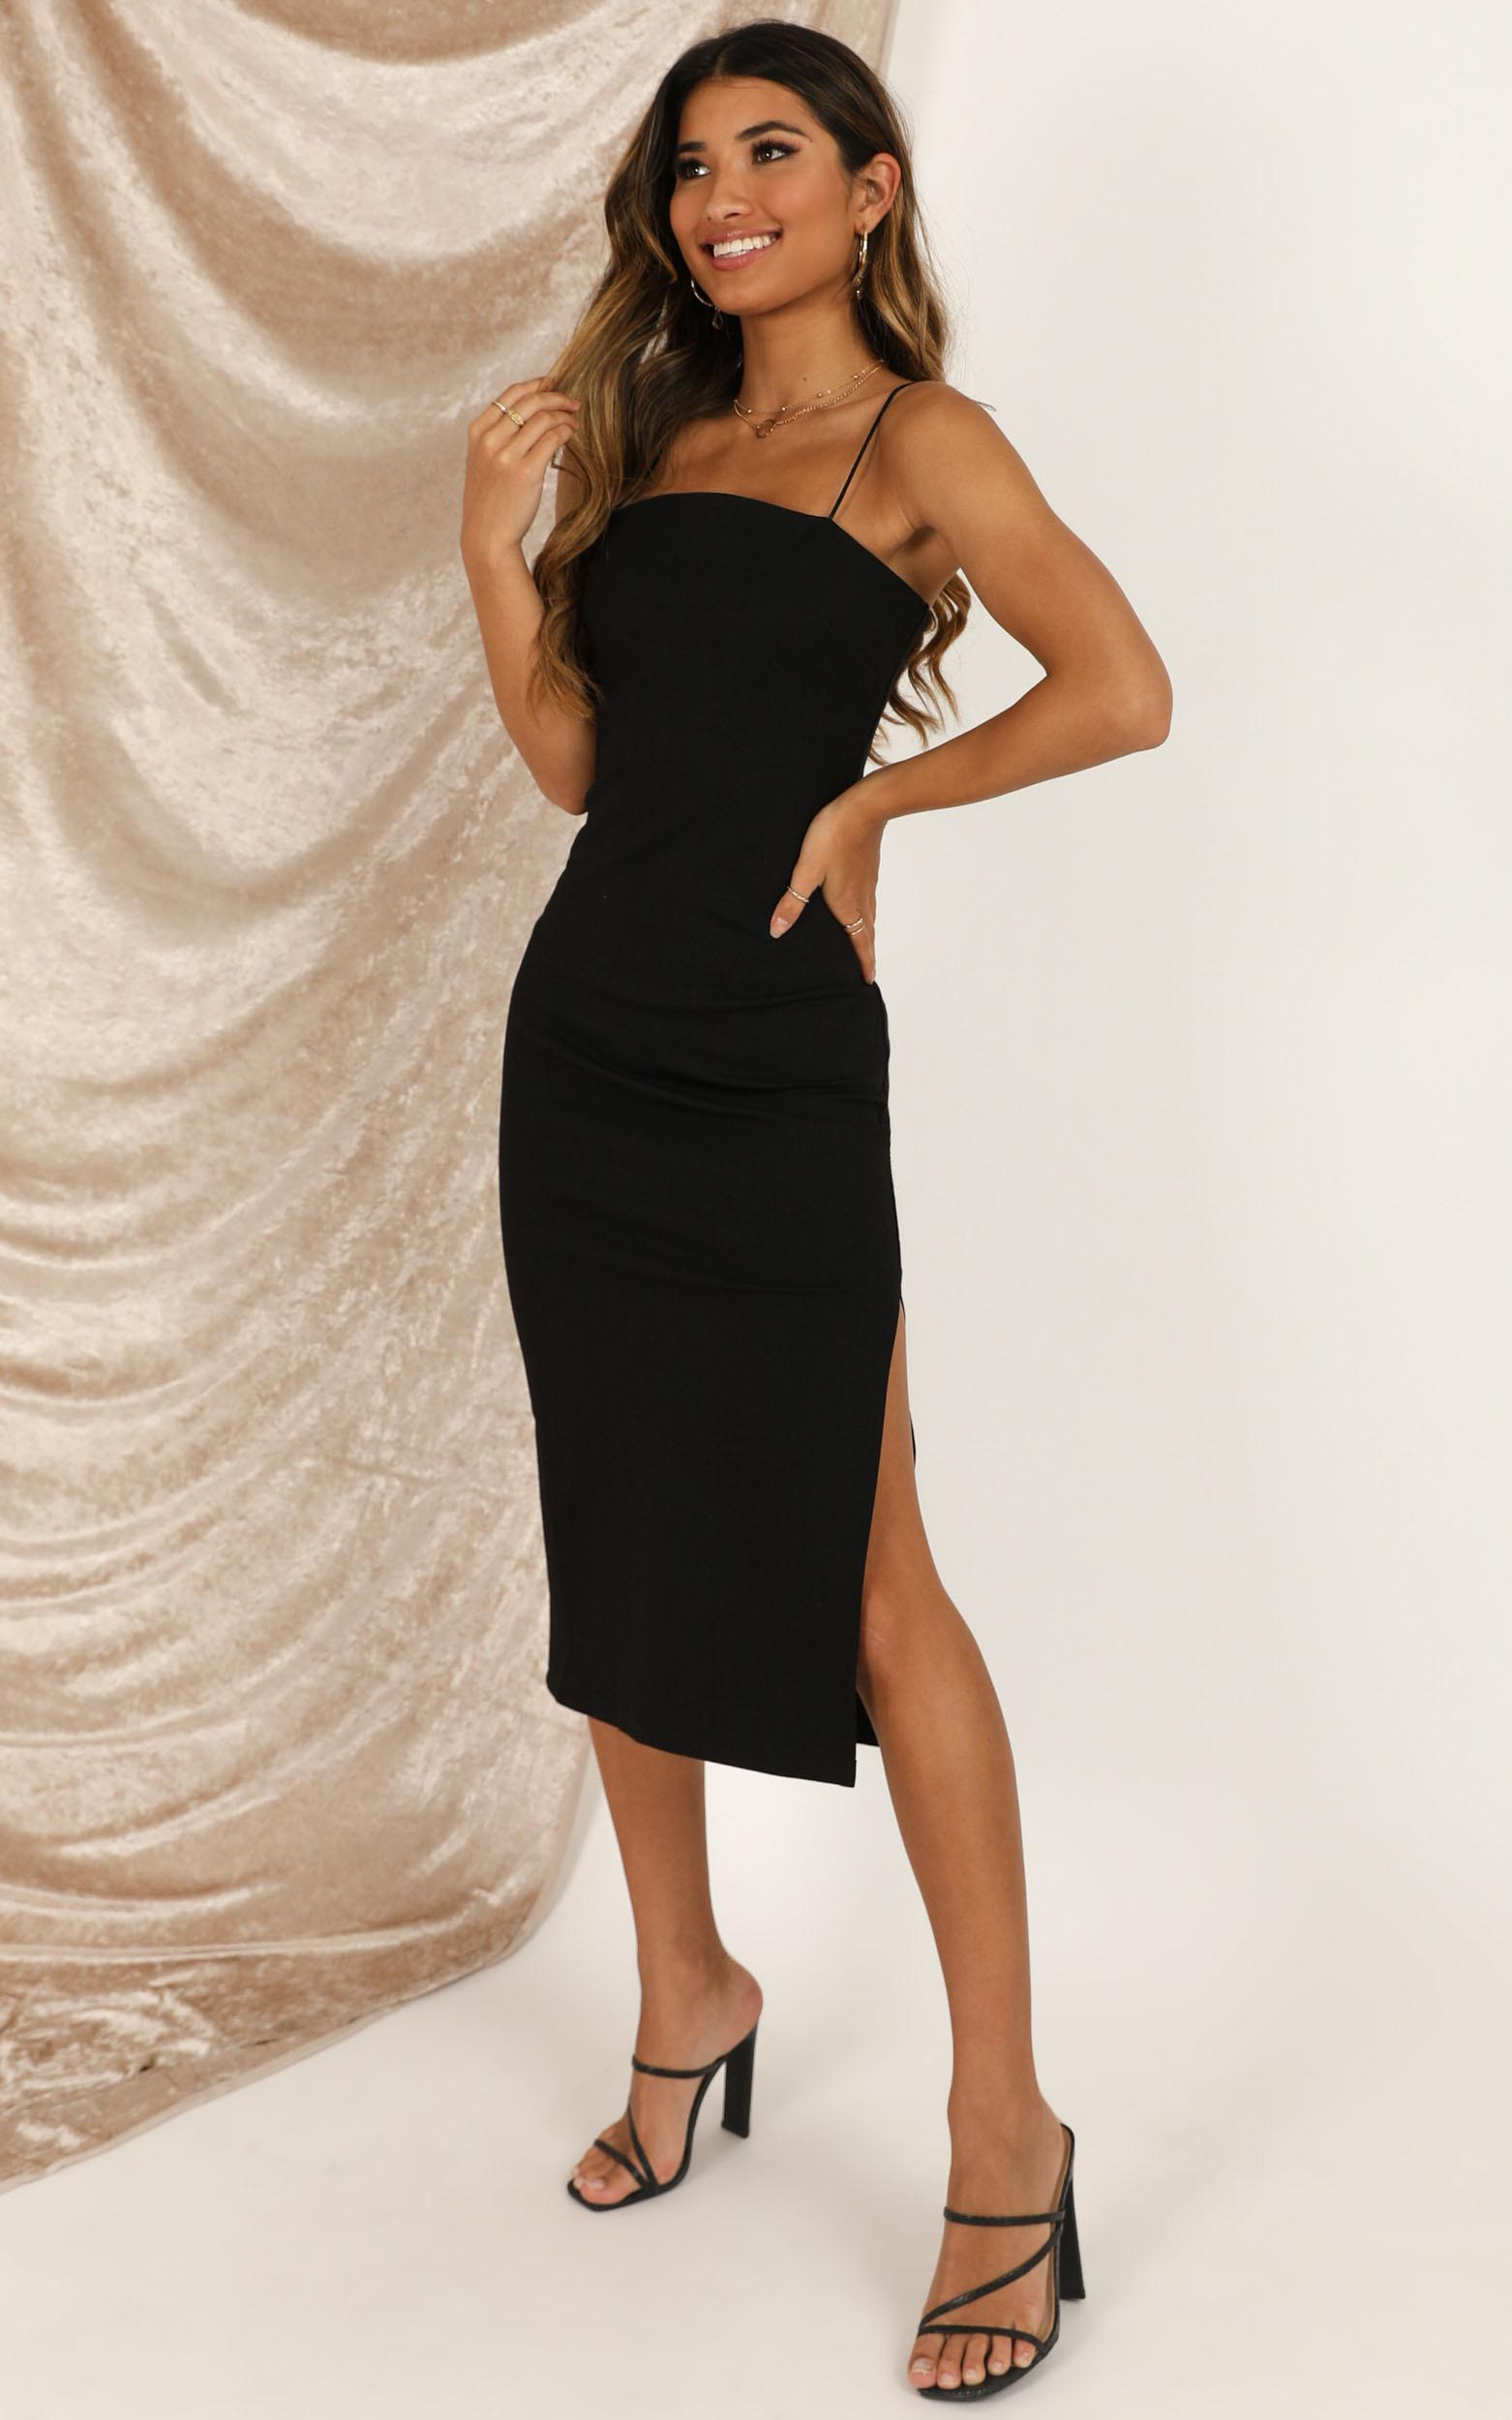 All For Fun dress in black - 16 (XXL), Black, hi-res image number null